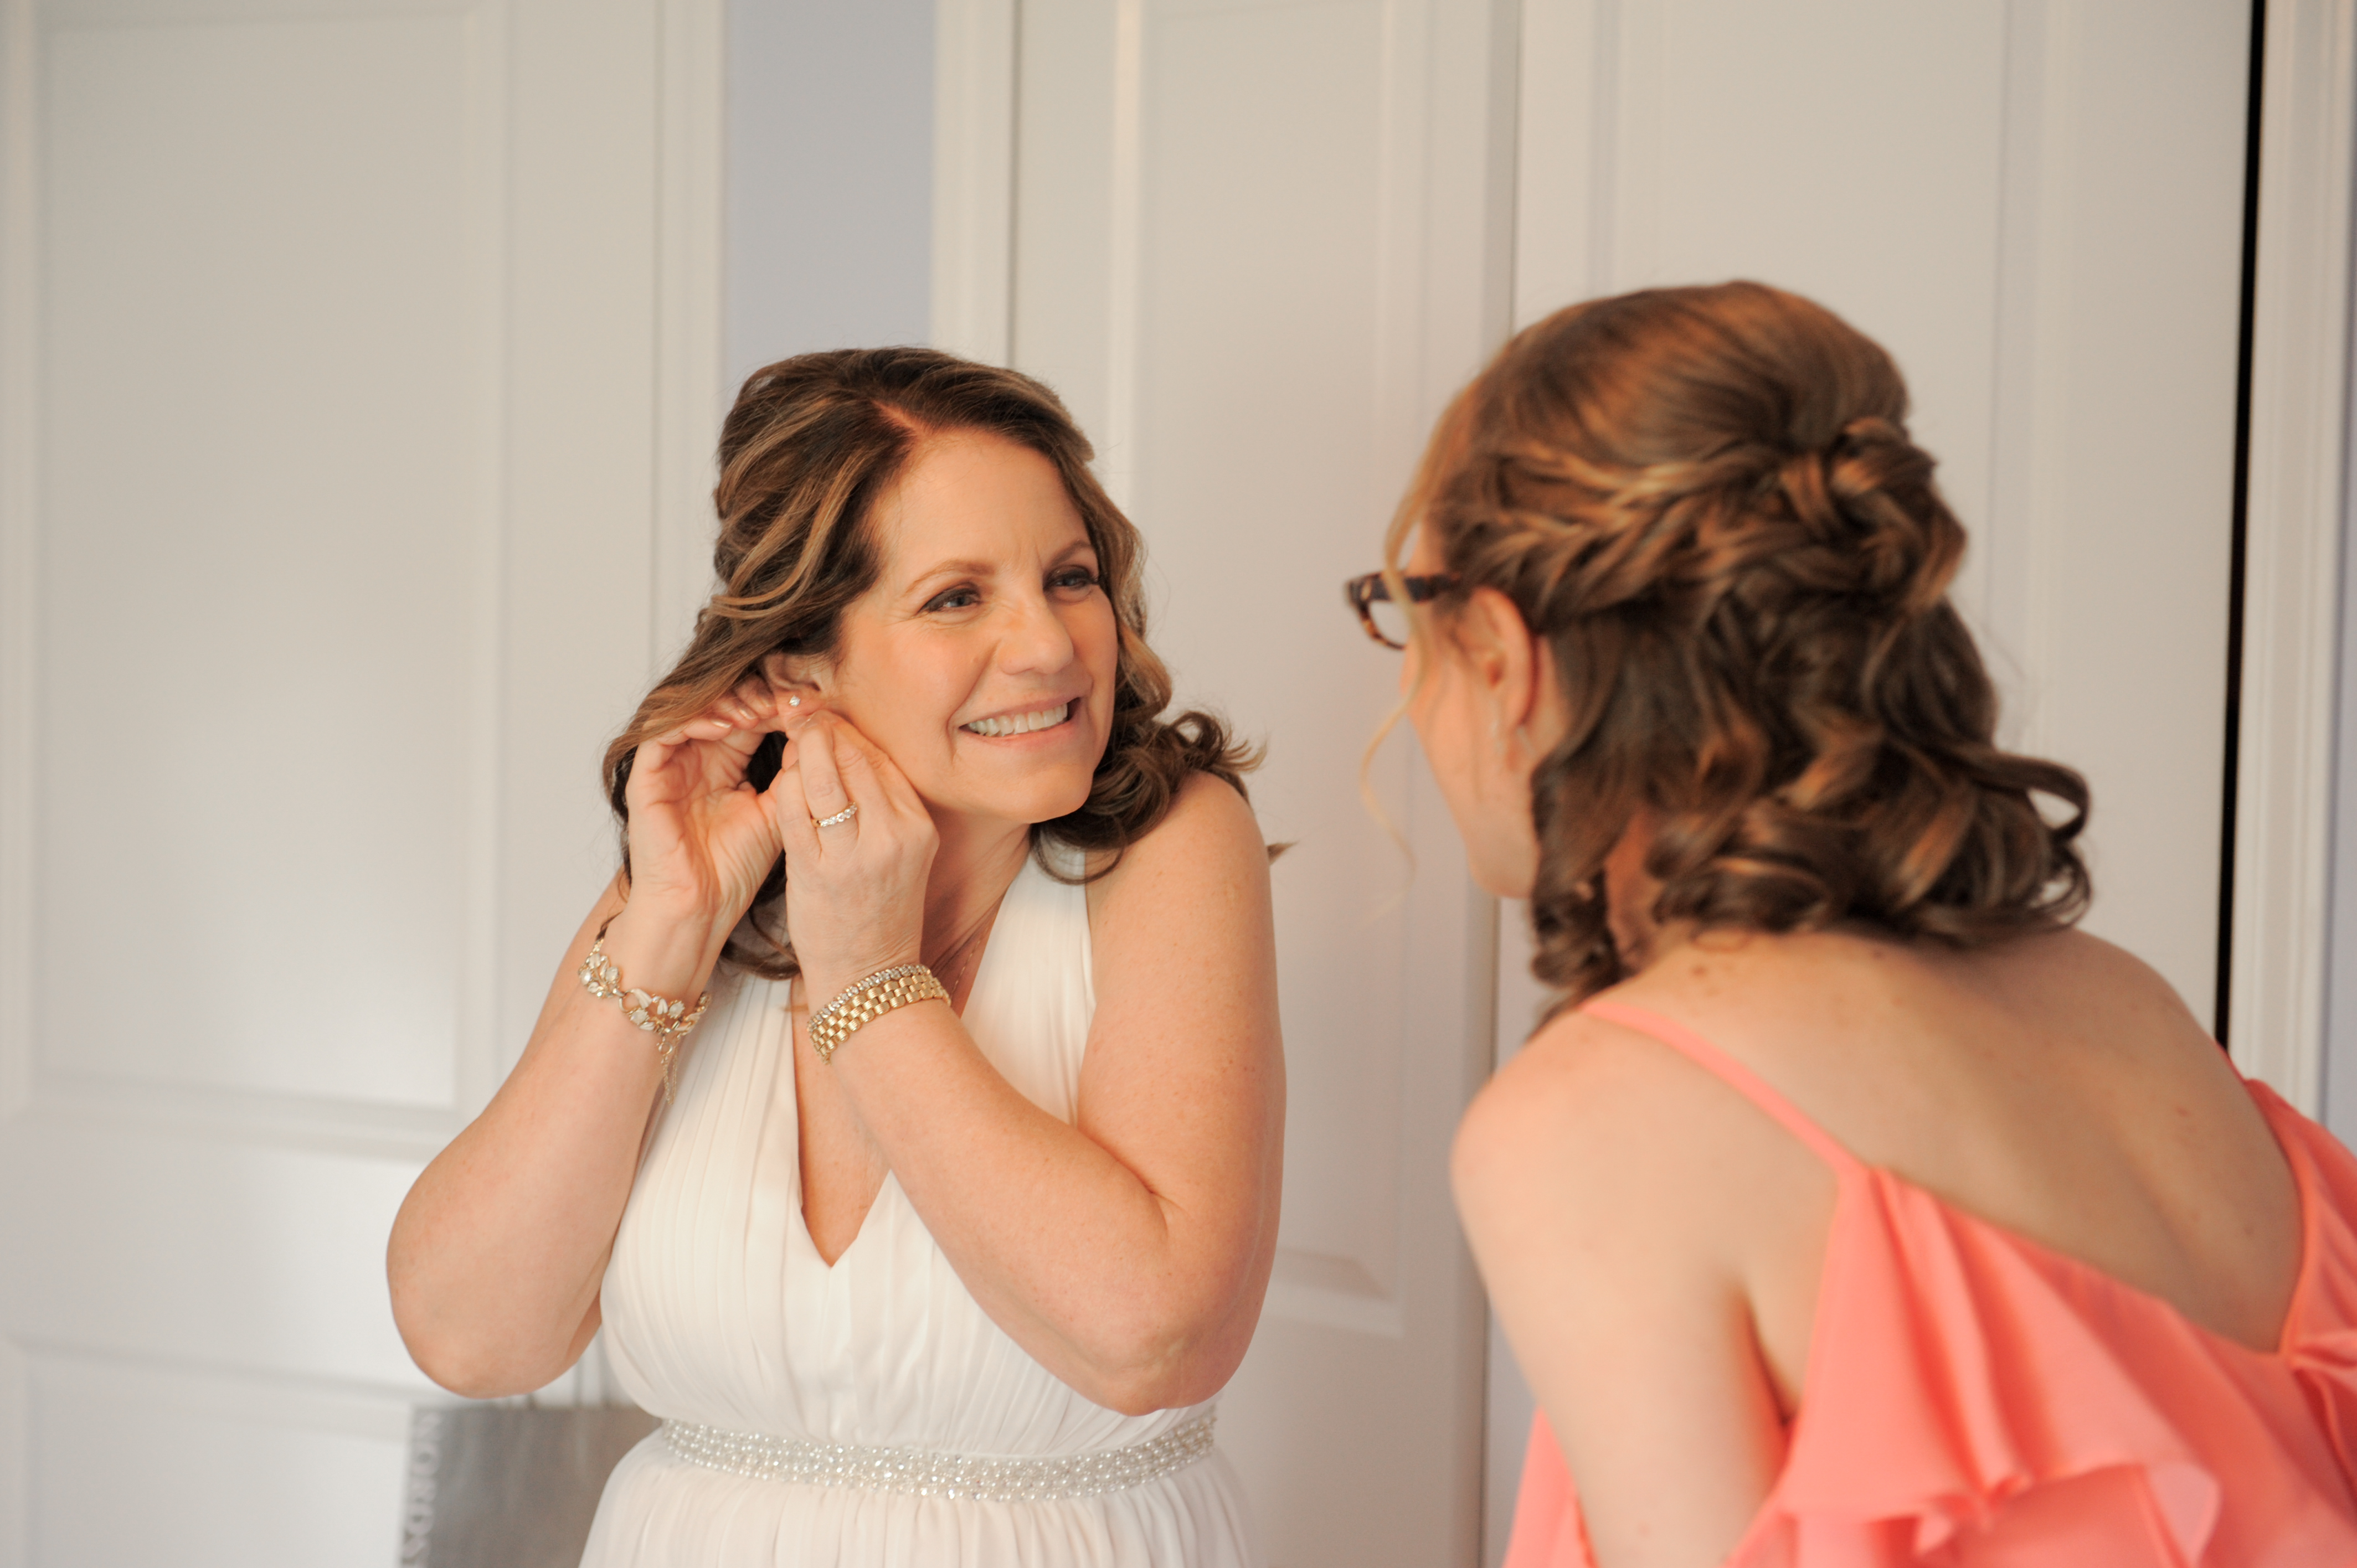 Michigan bride is helped into her dress by her new daughter in law. Photos by Marci Curtis